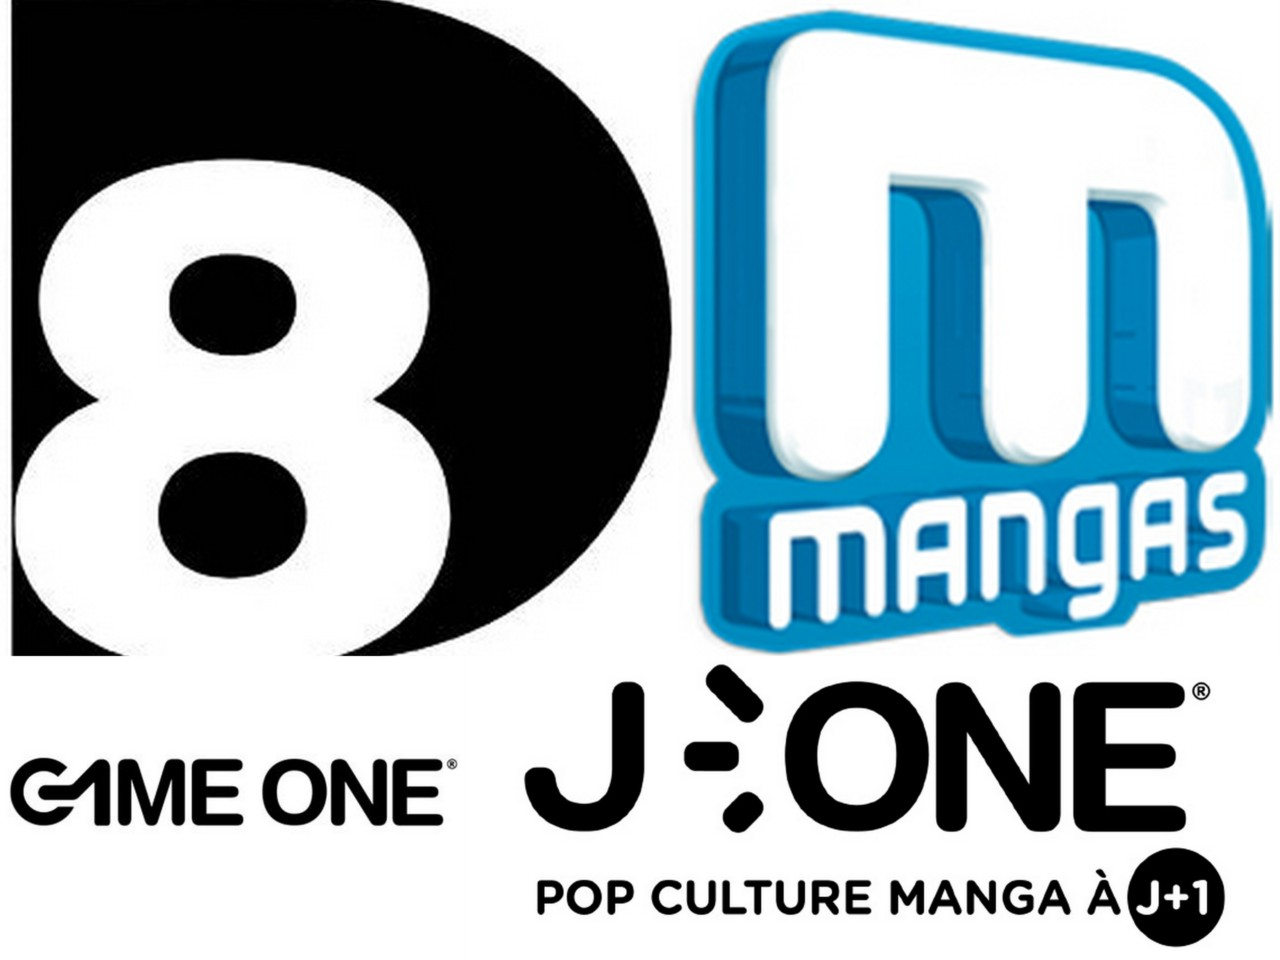 Chaînes TV D8 J-one Mangas Game One